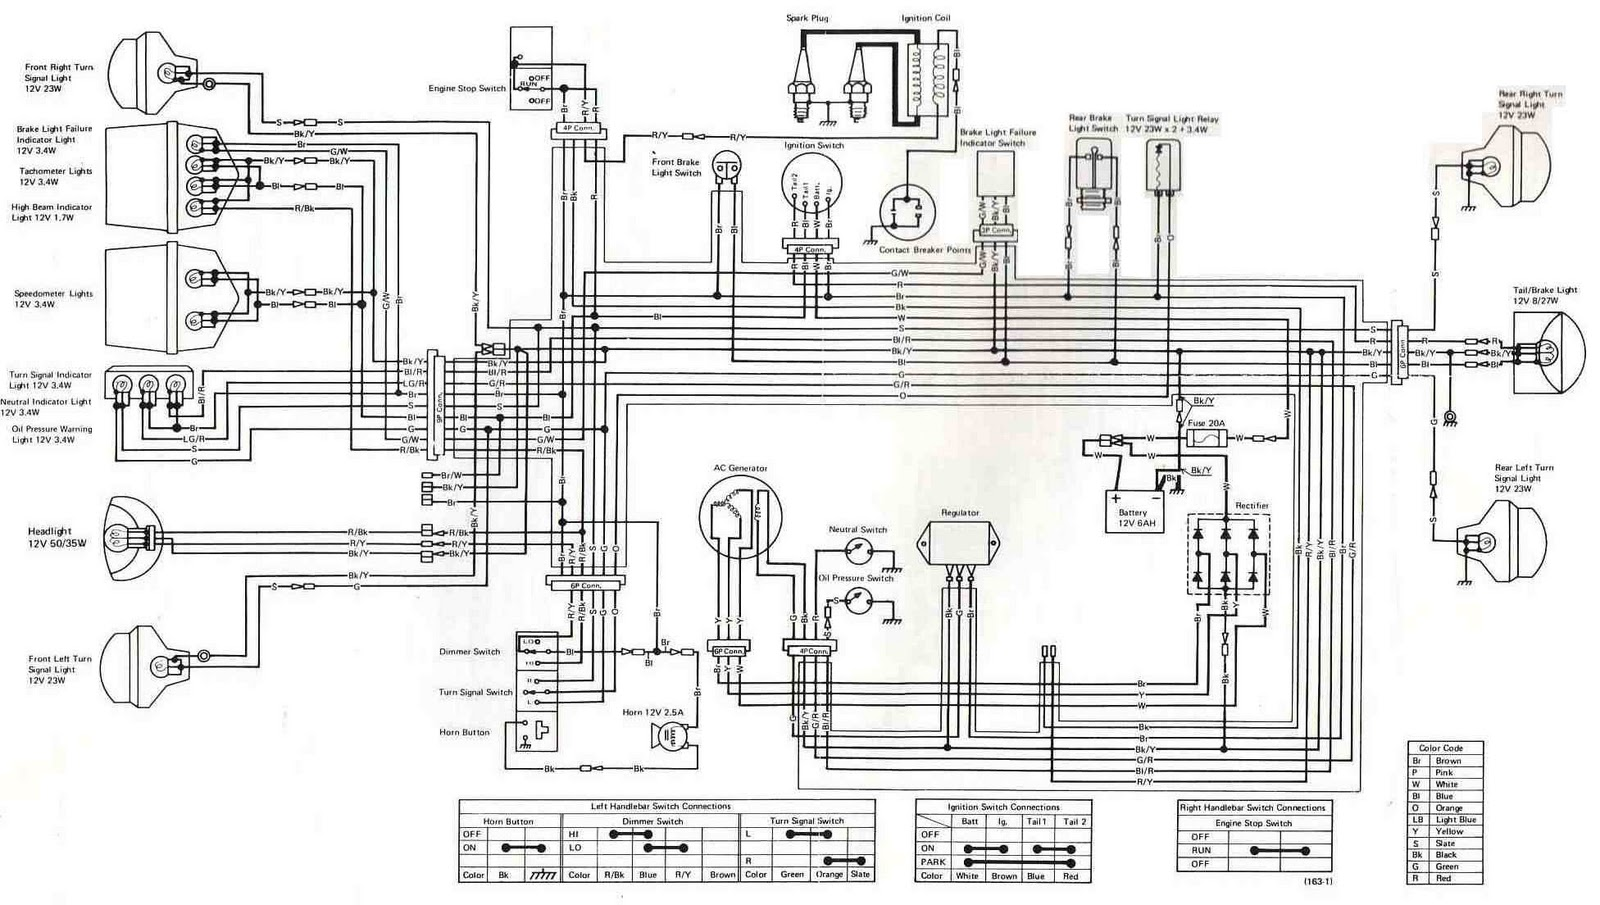 Kawasaki KLT 200 Wiring Diagram | All about Wiring Diagrams